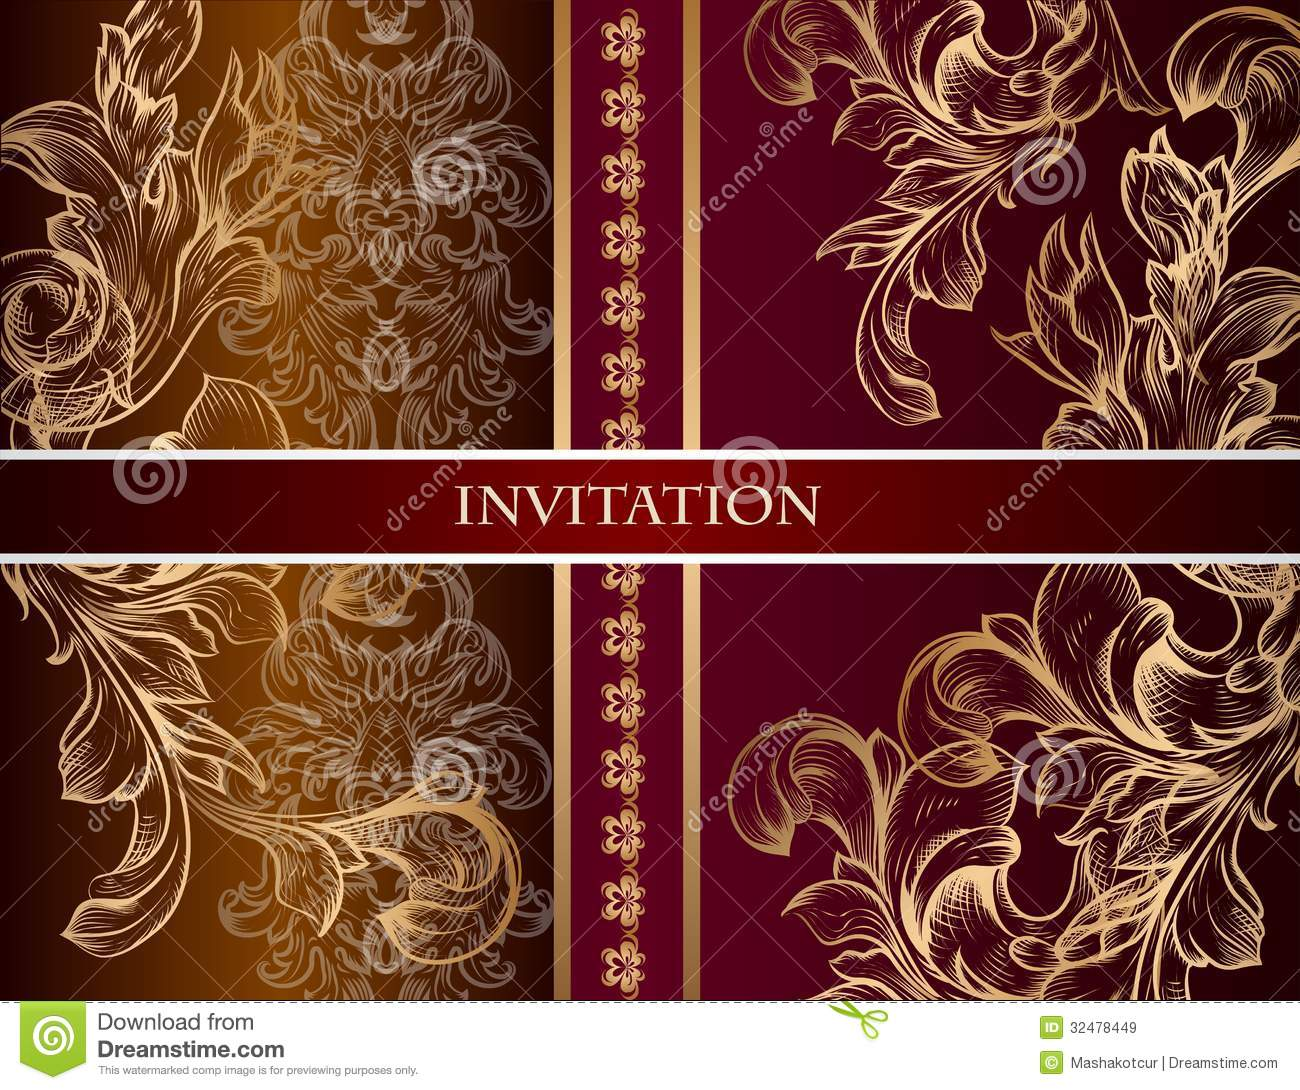 Wedding Invitation Card In Royal Style Stock Vector - Illustration ...